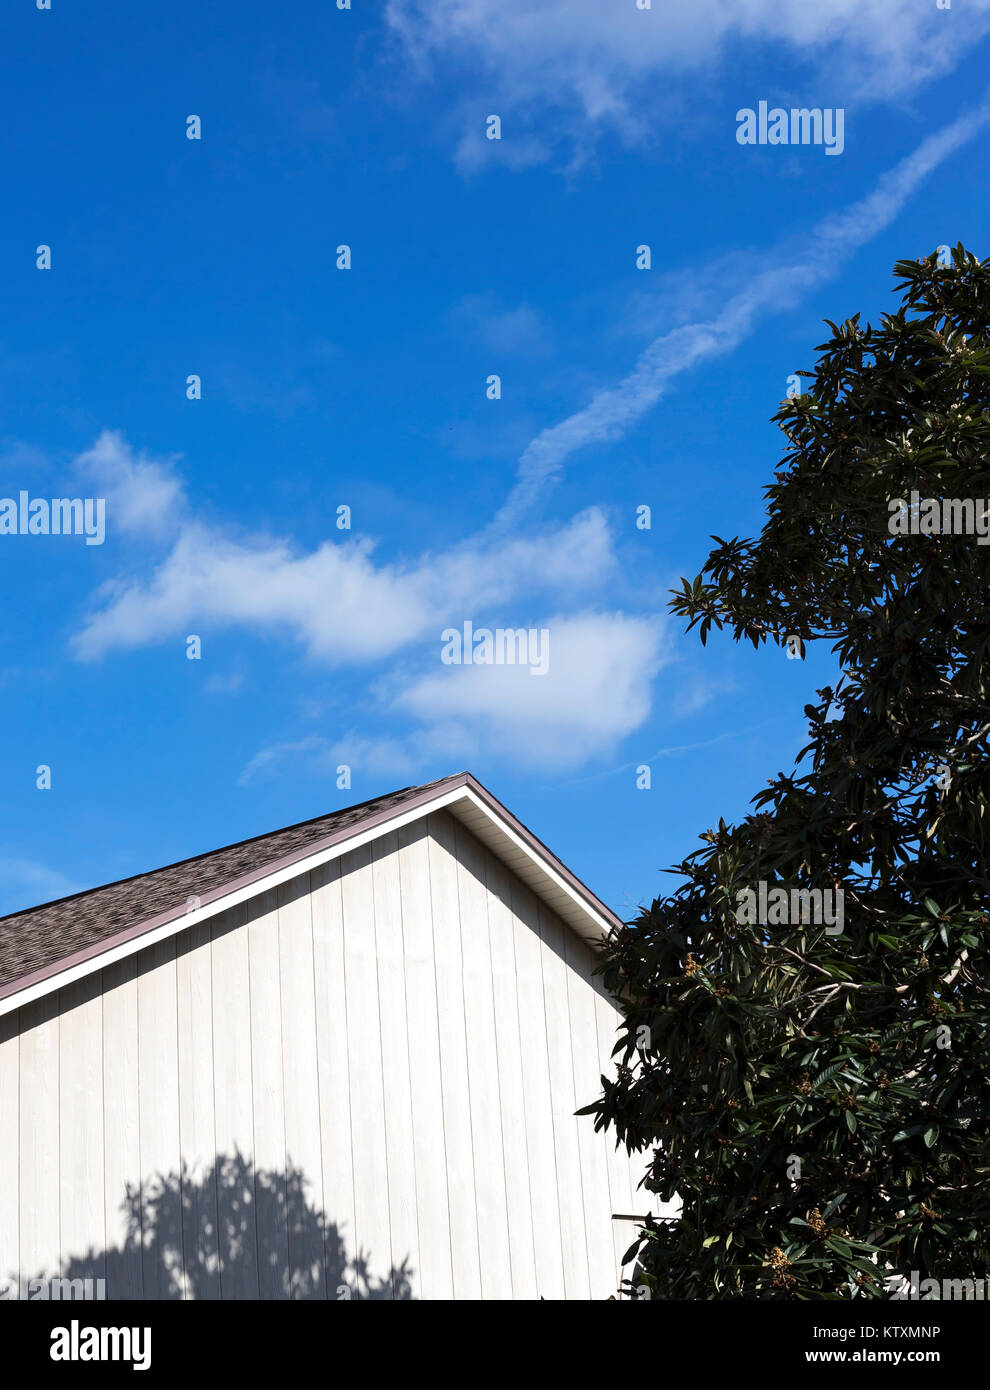 Vivid blue skies with clouds, tree, rooftop and shadows in bright midday sun Stock Photo